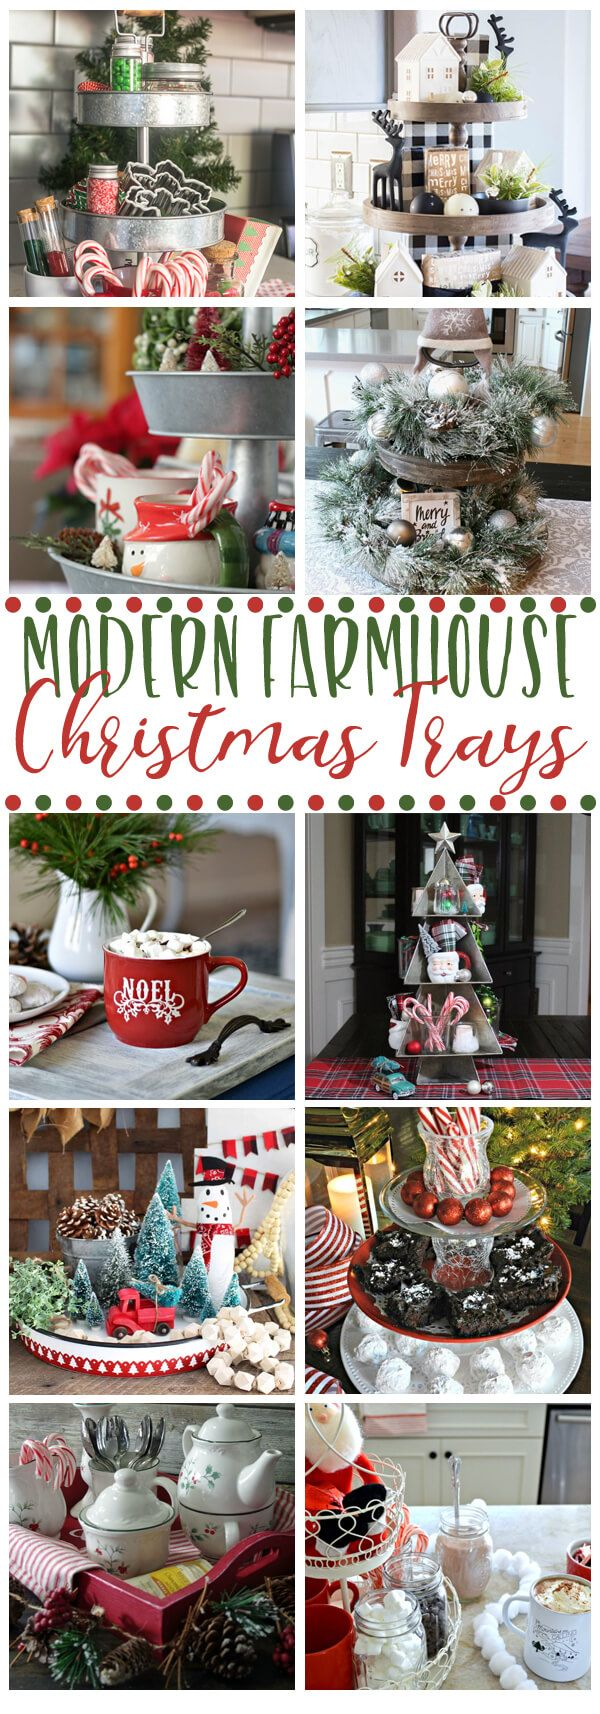 QUICK & EASY Modern Farmhouse Christmas Tray IDEAS for Decorating Your Home and Kitchen #farmhouse #farmhousechristmas